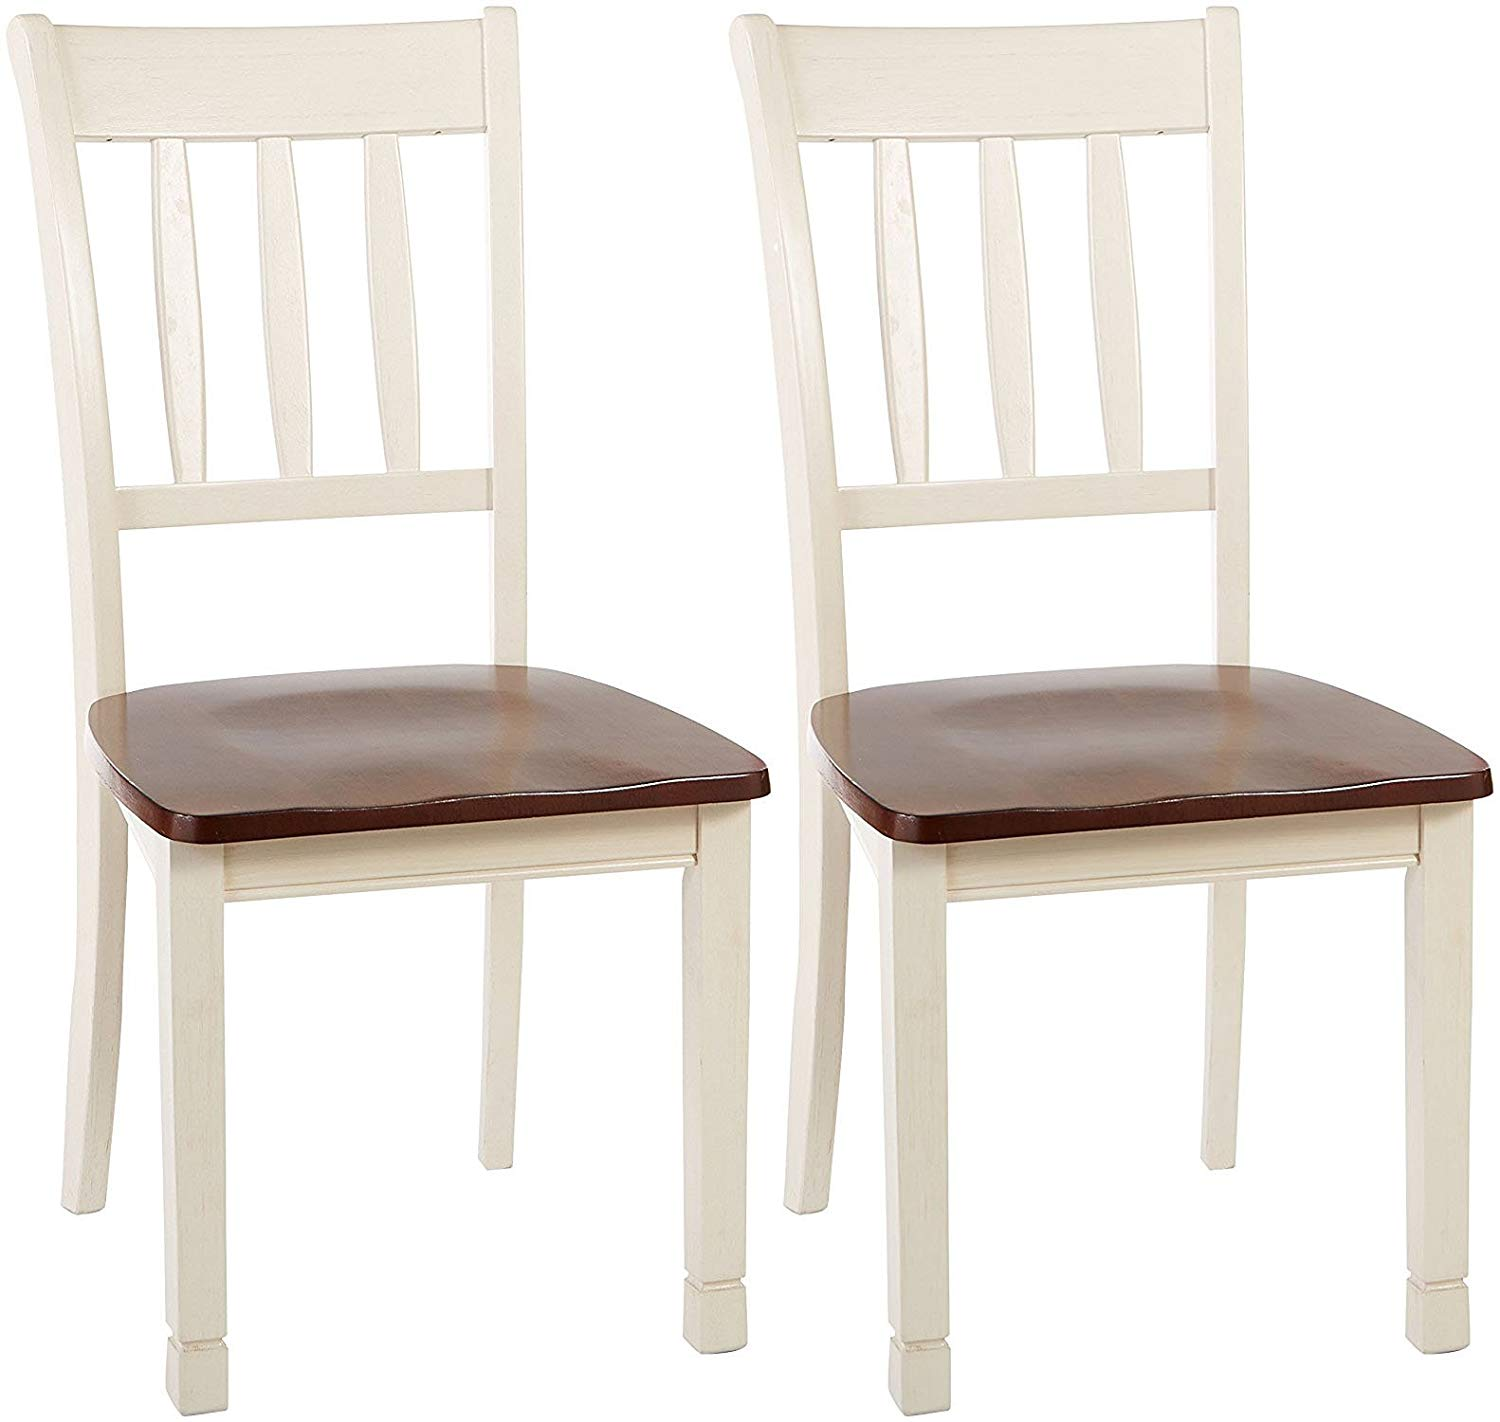 Whitesburg Dining Room Side Chair - Set of 2 - [D583-02-SET2]